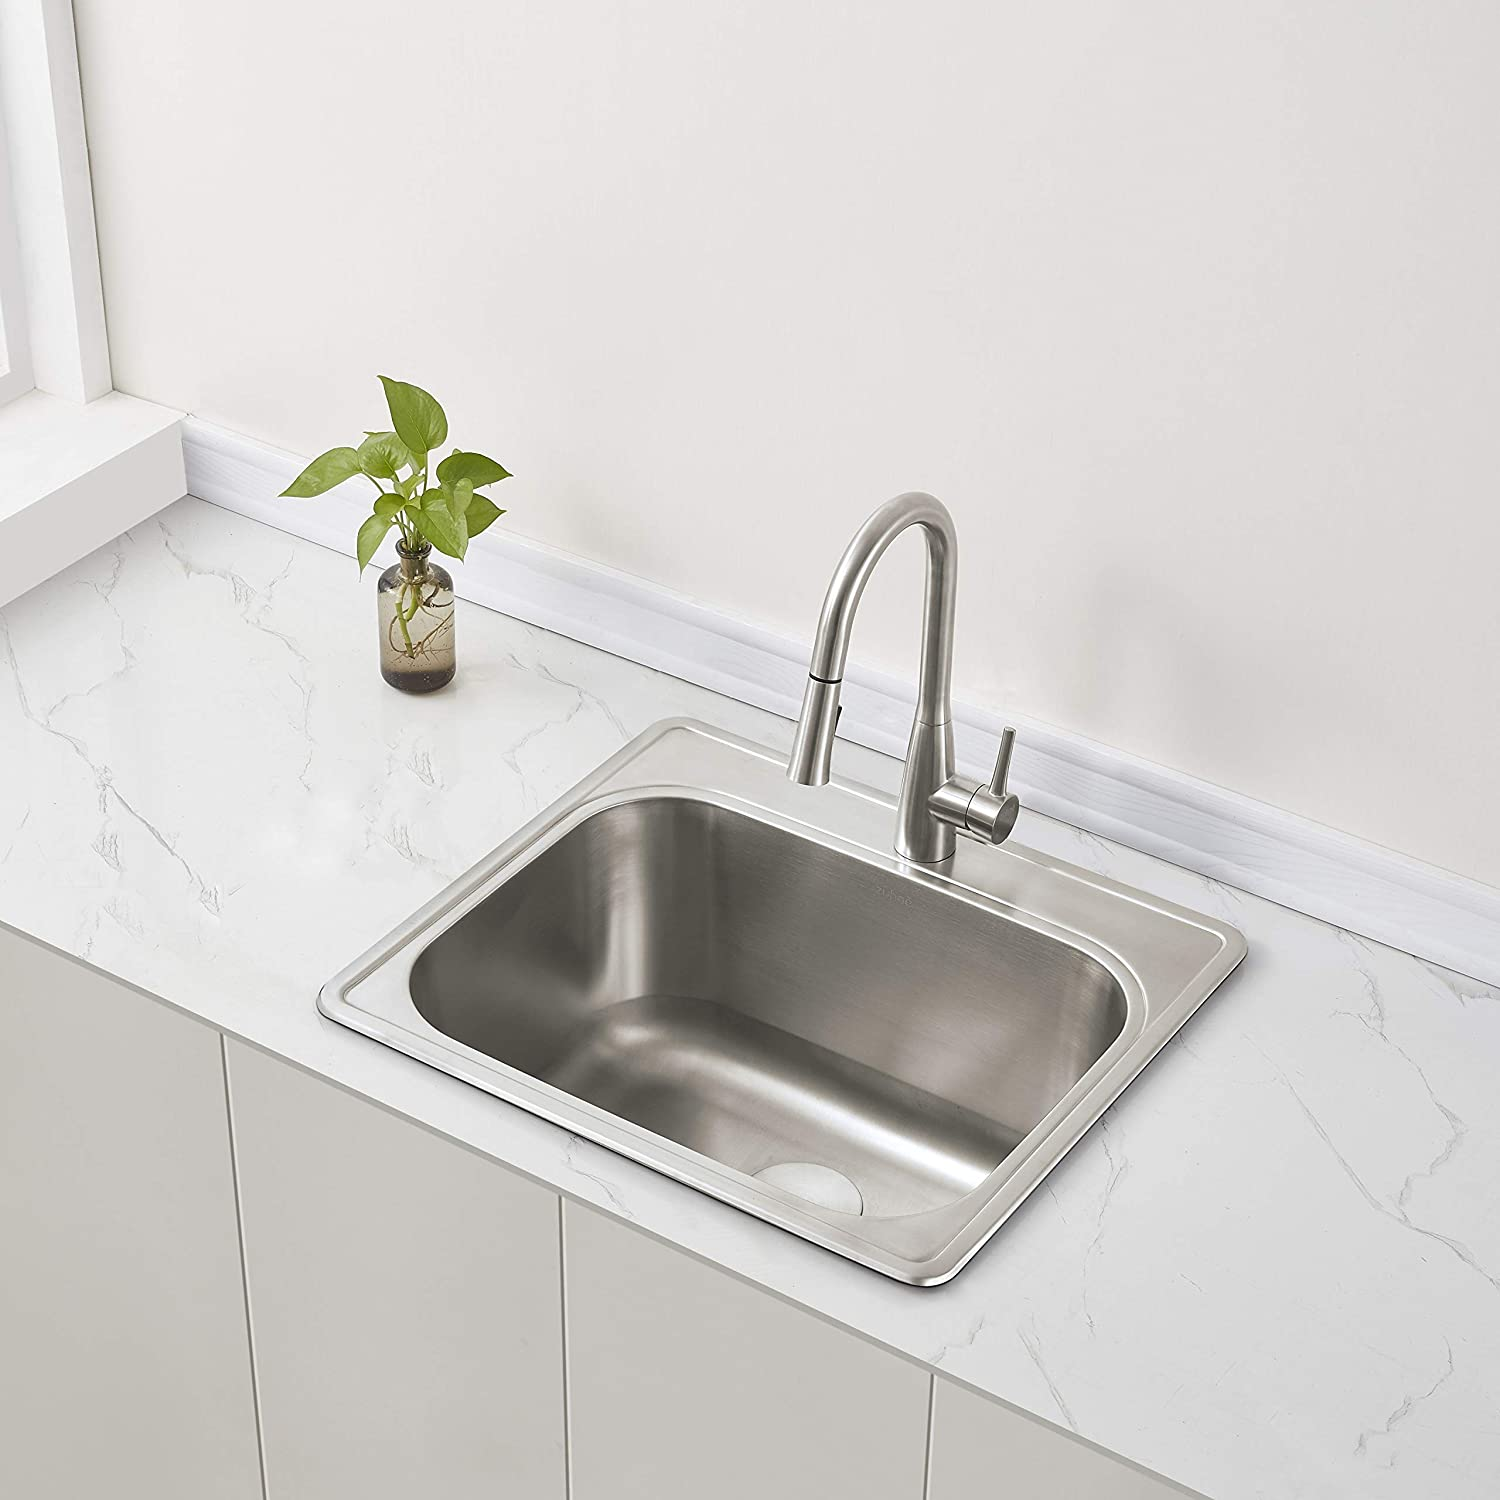 "ZUHNE 25"" by 22"" Drop-In Utility Sink for Laundry Room/Kitchen Stainless Steel (Extra Deep 12"" Basin)"